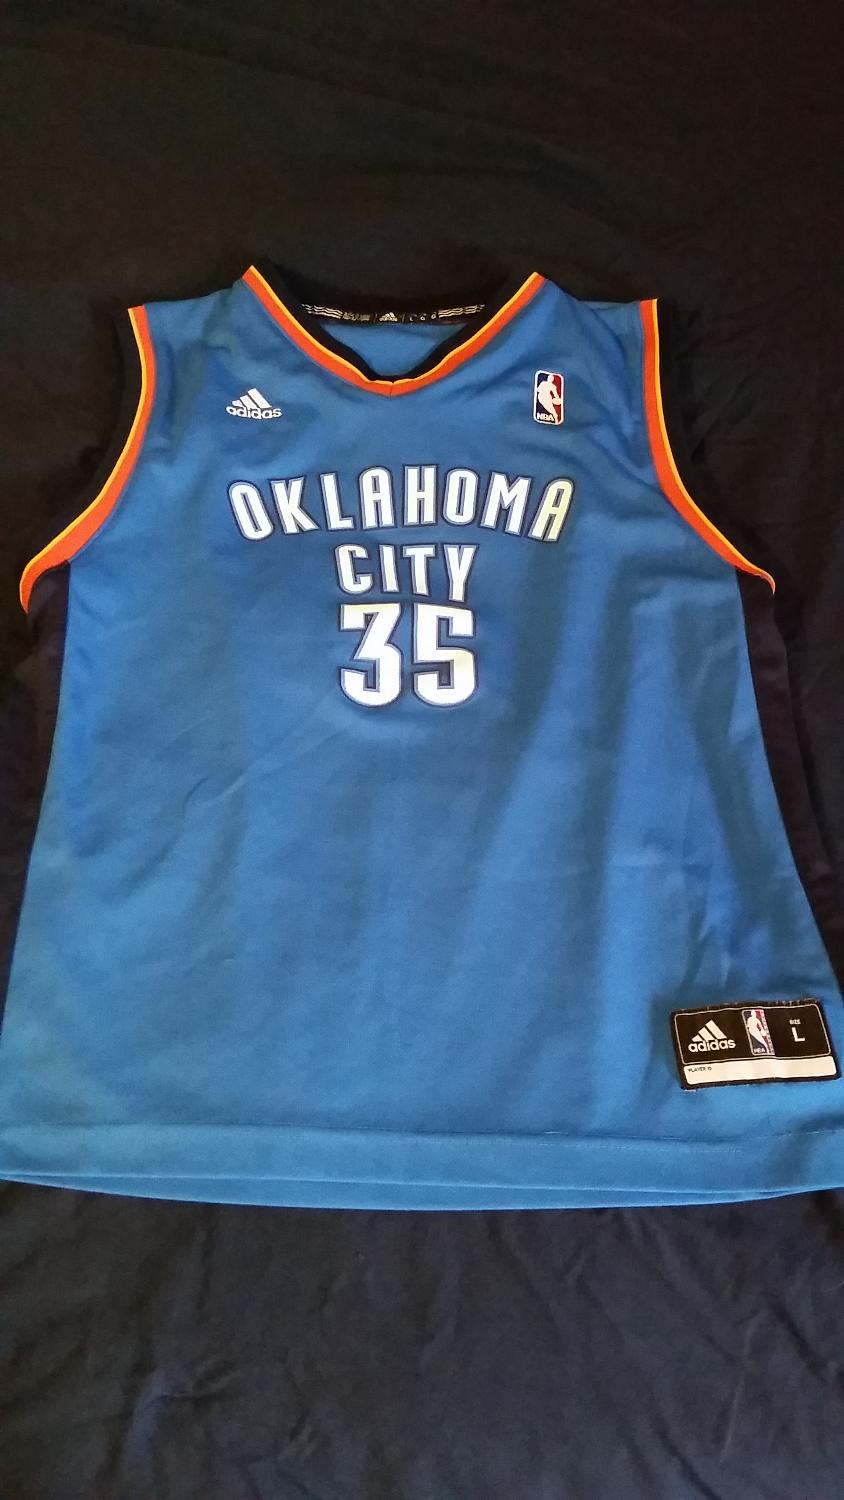 reputable site 9b558 2d410 Kevin Durant OKC Jersey Youth L